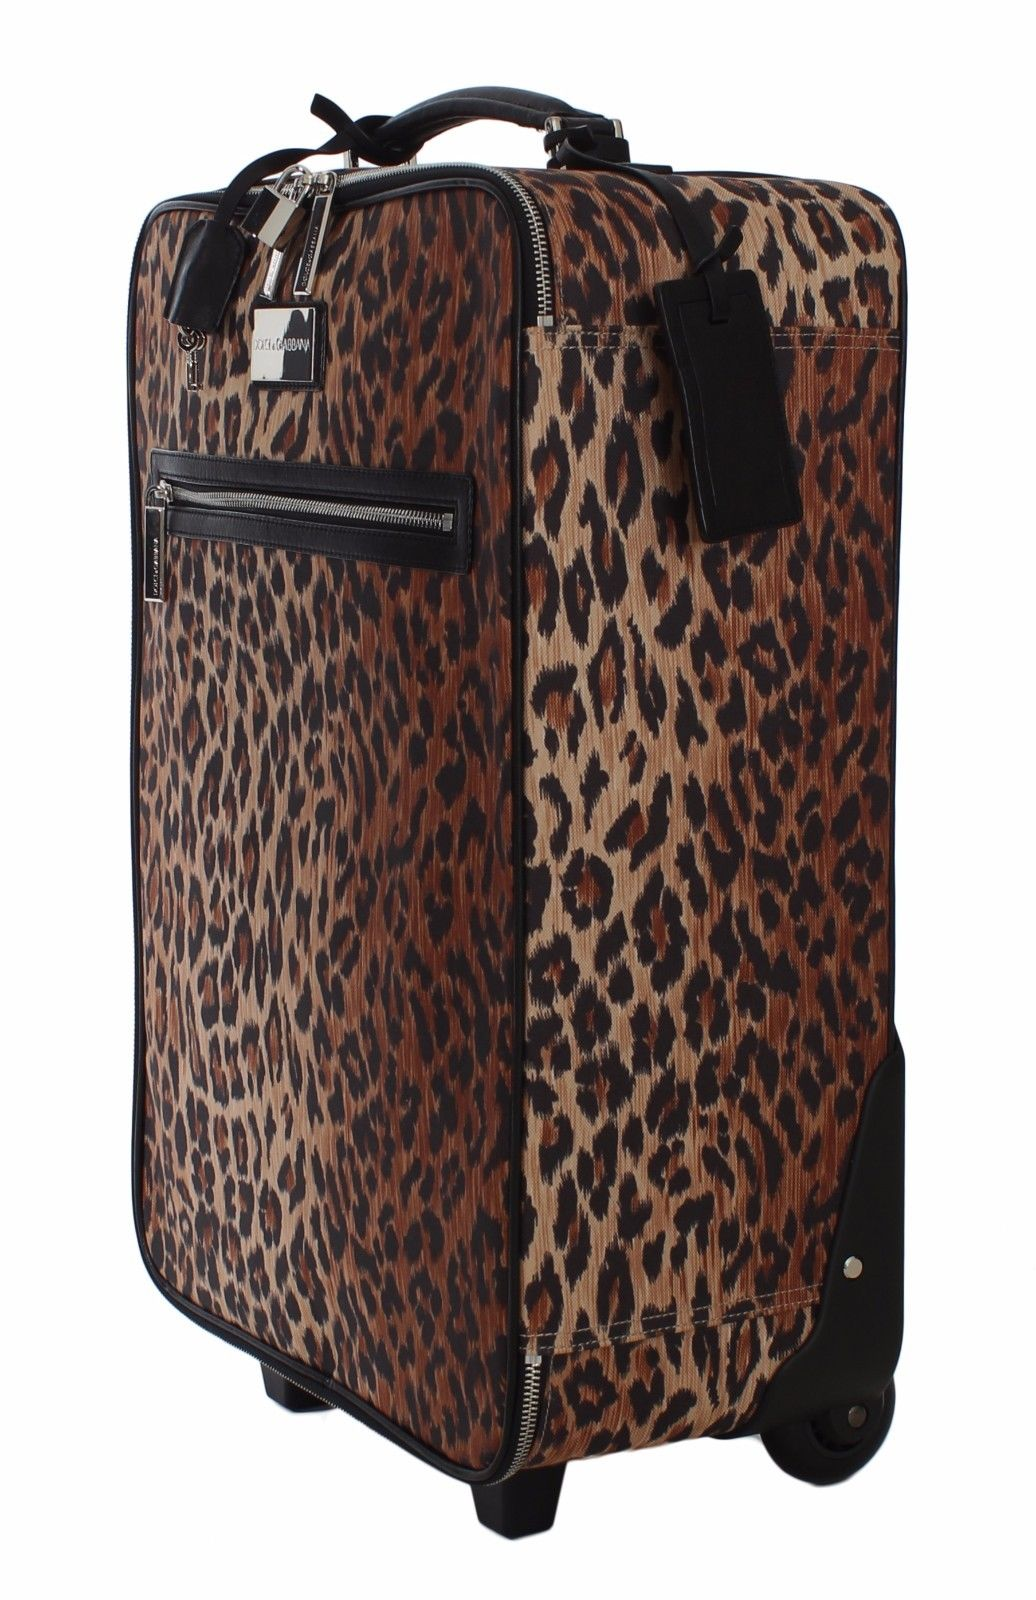 Trolley Leopard Cabin Luggage Gabbana Bag amp; Travel Dolce Suitcase WqgF8Tnx